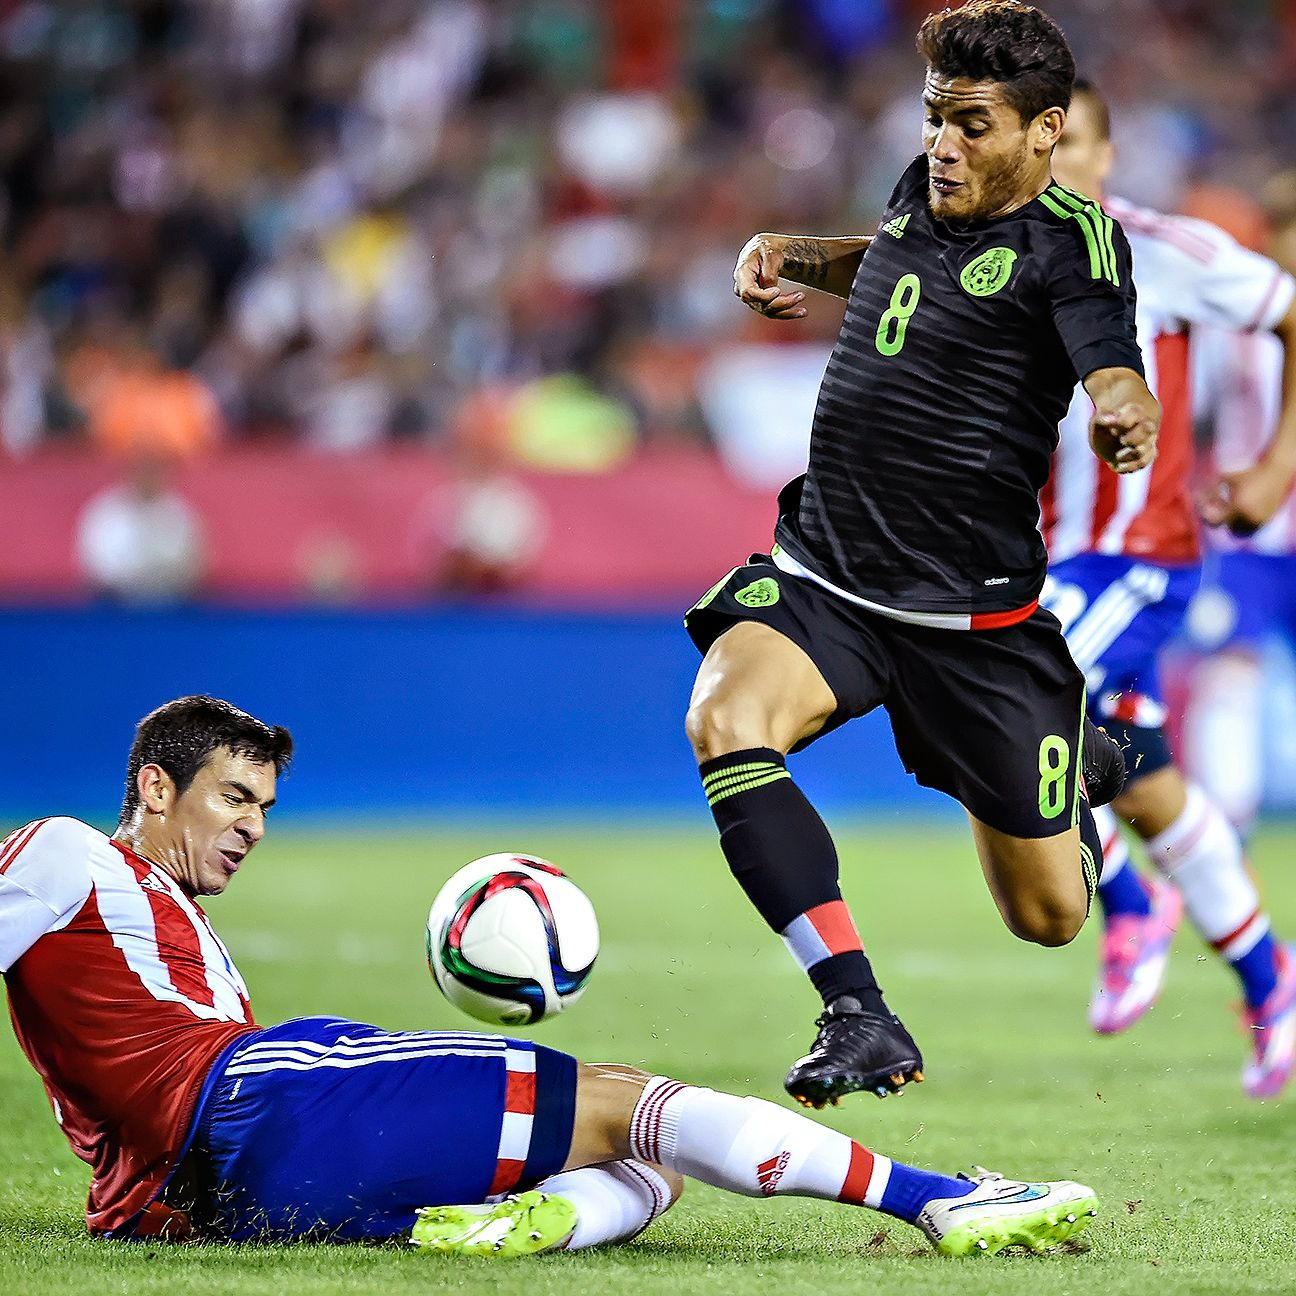 Jonathan dos Santos may have earned himself a spot on Mexico's Gold Cup team following his stellar performance versus Paraguay.